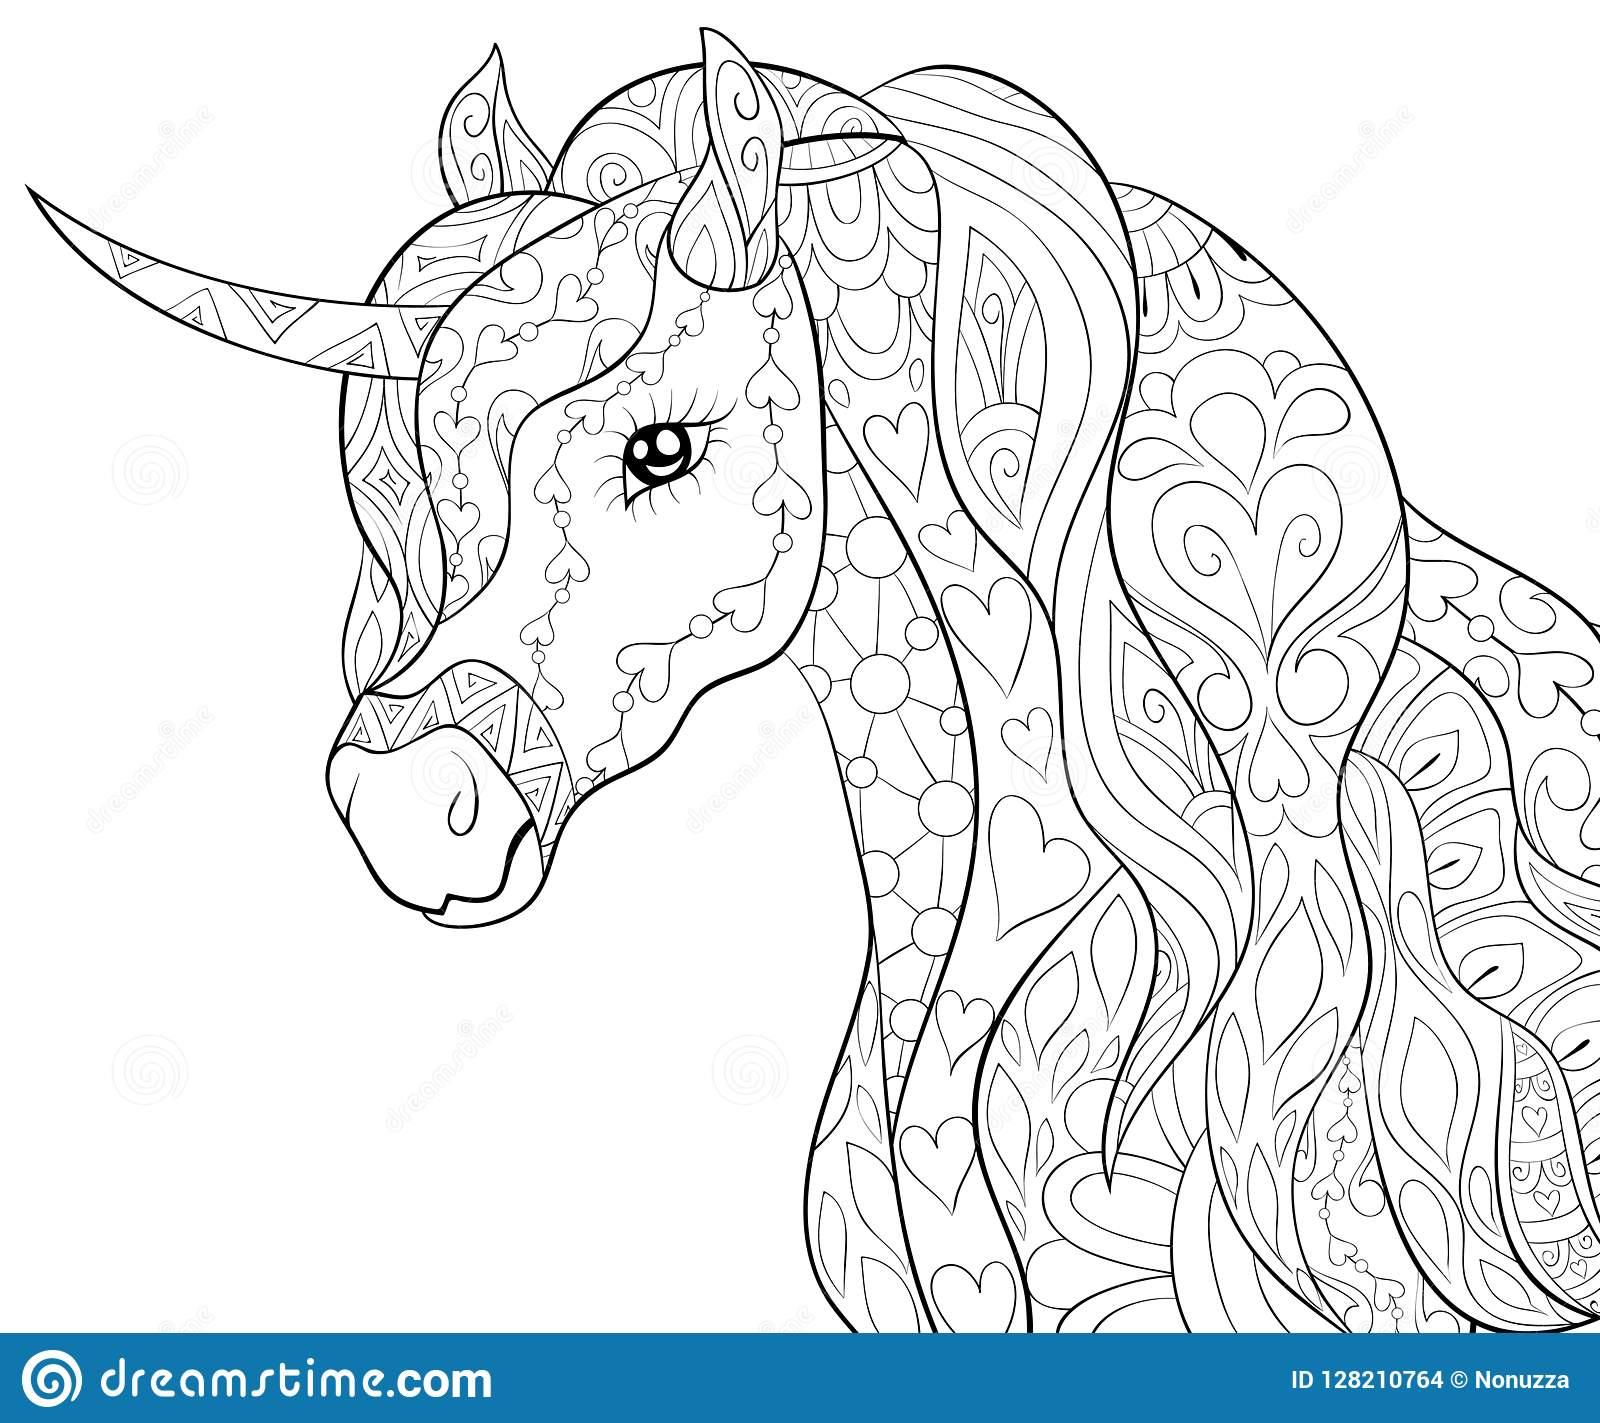 Adult Coloring Book Page A Cute Horse Unicorn Image For